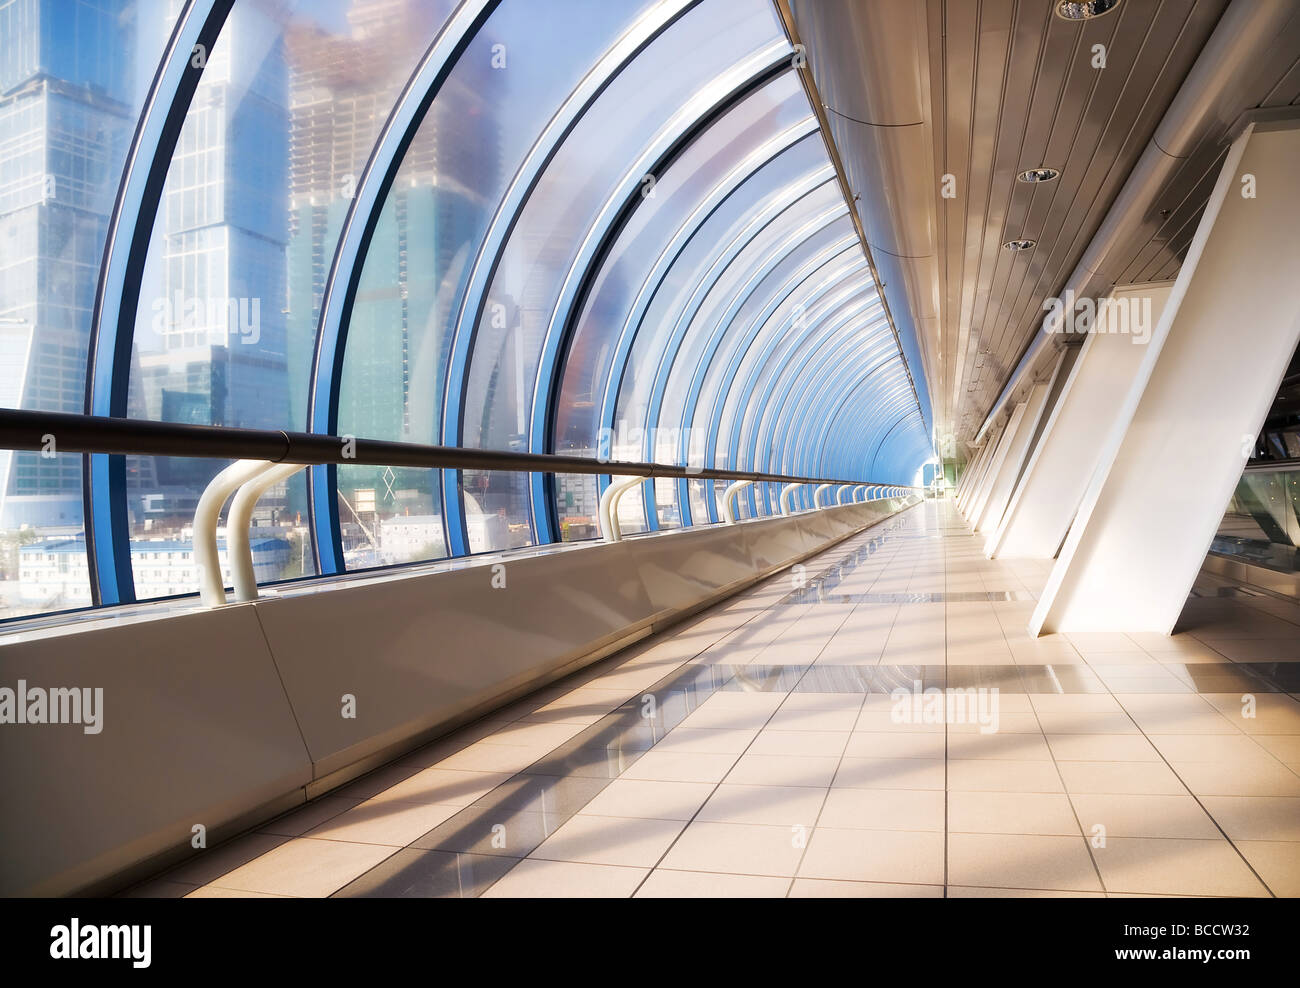 Modern bridge interior Wide angle view Stock Photo